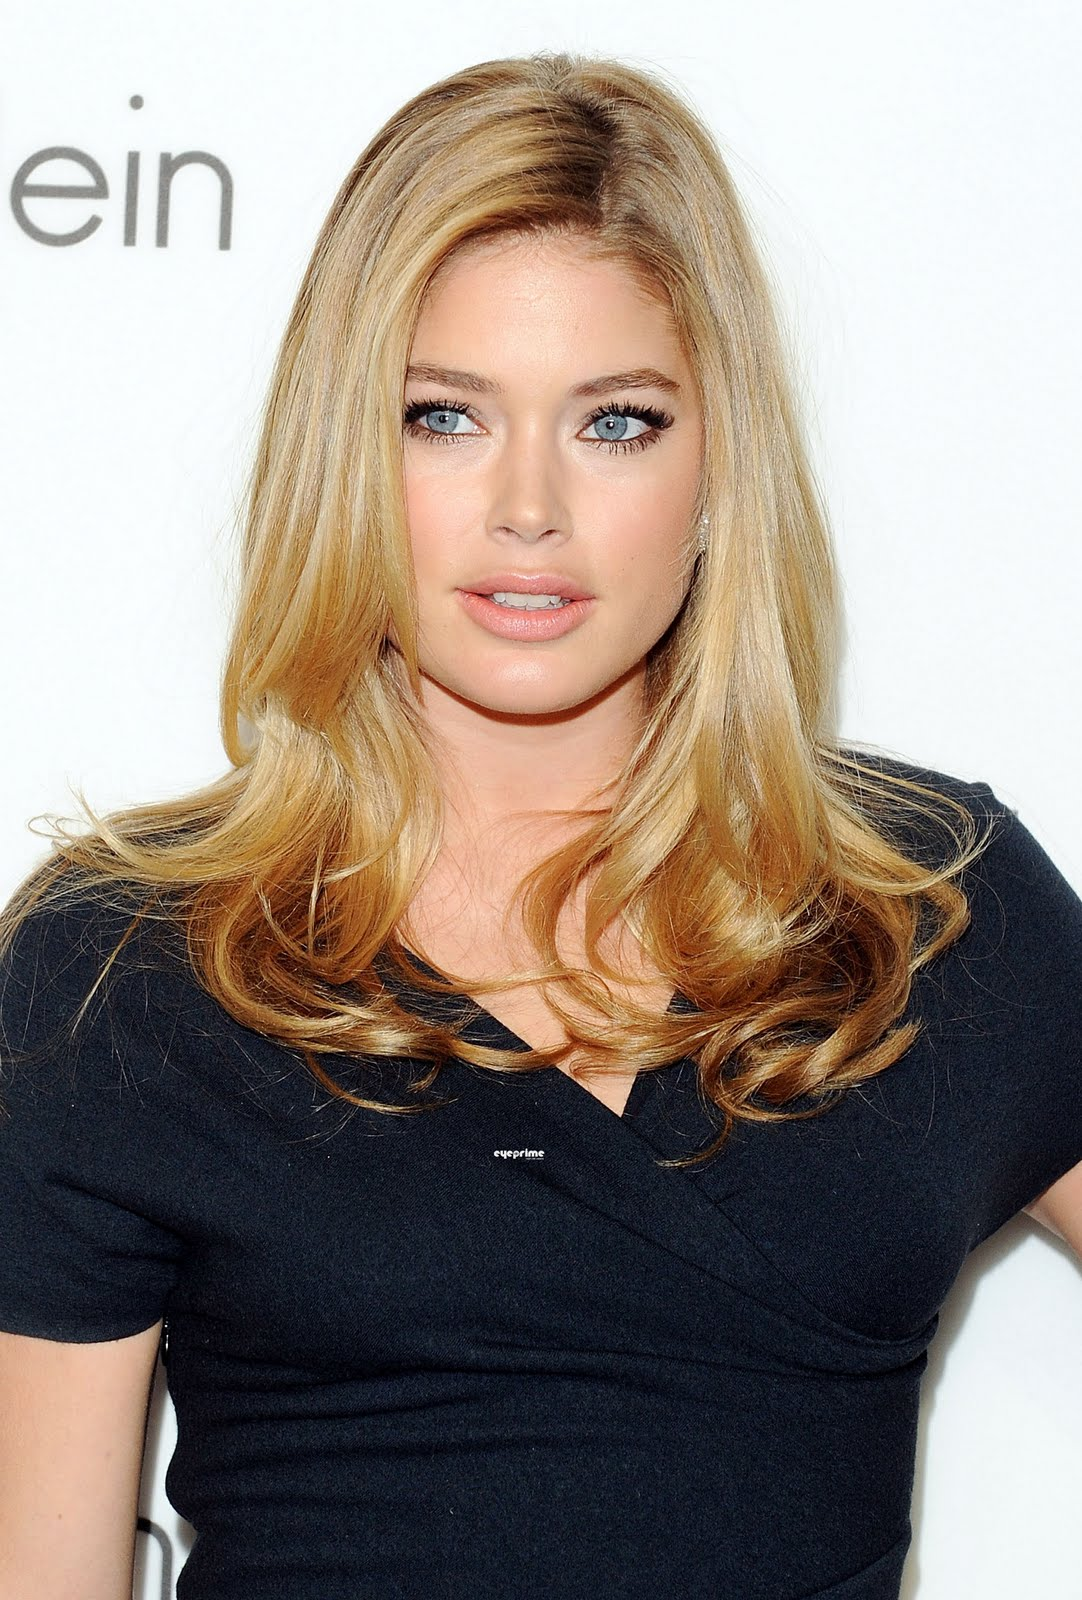 Doutzen Kroes - Wallpaper Gallery